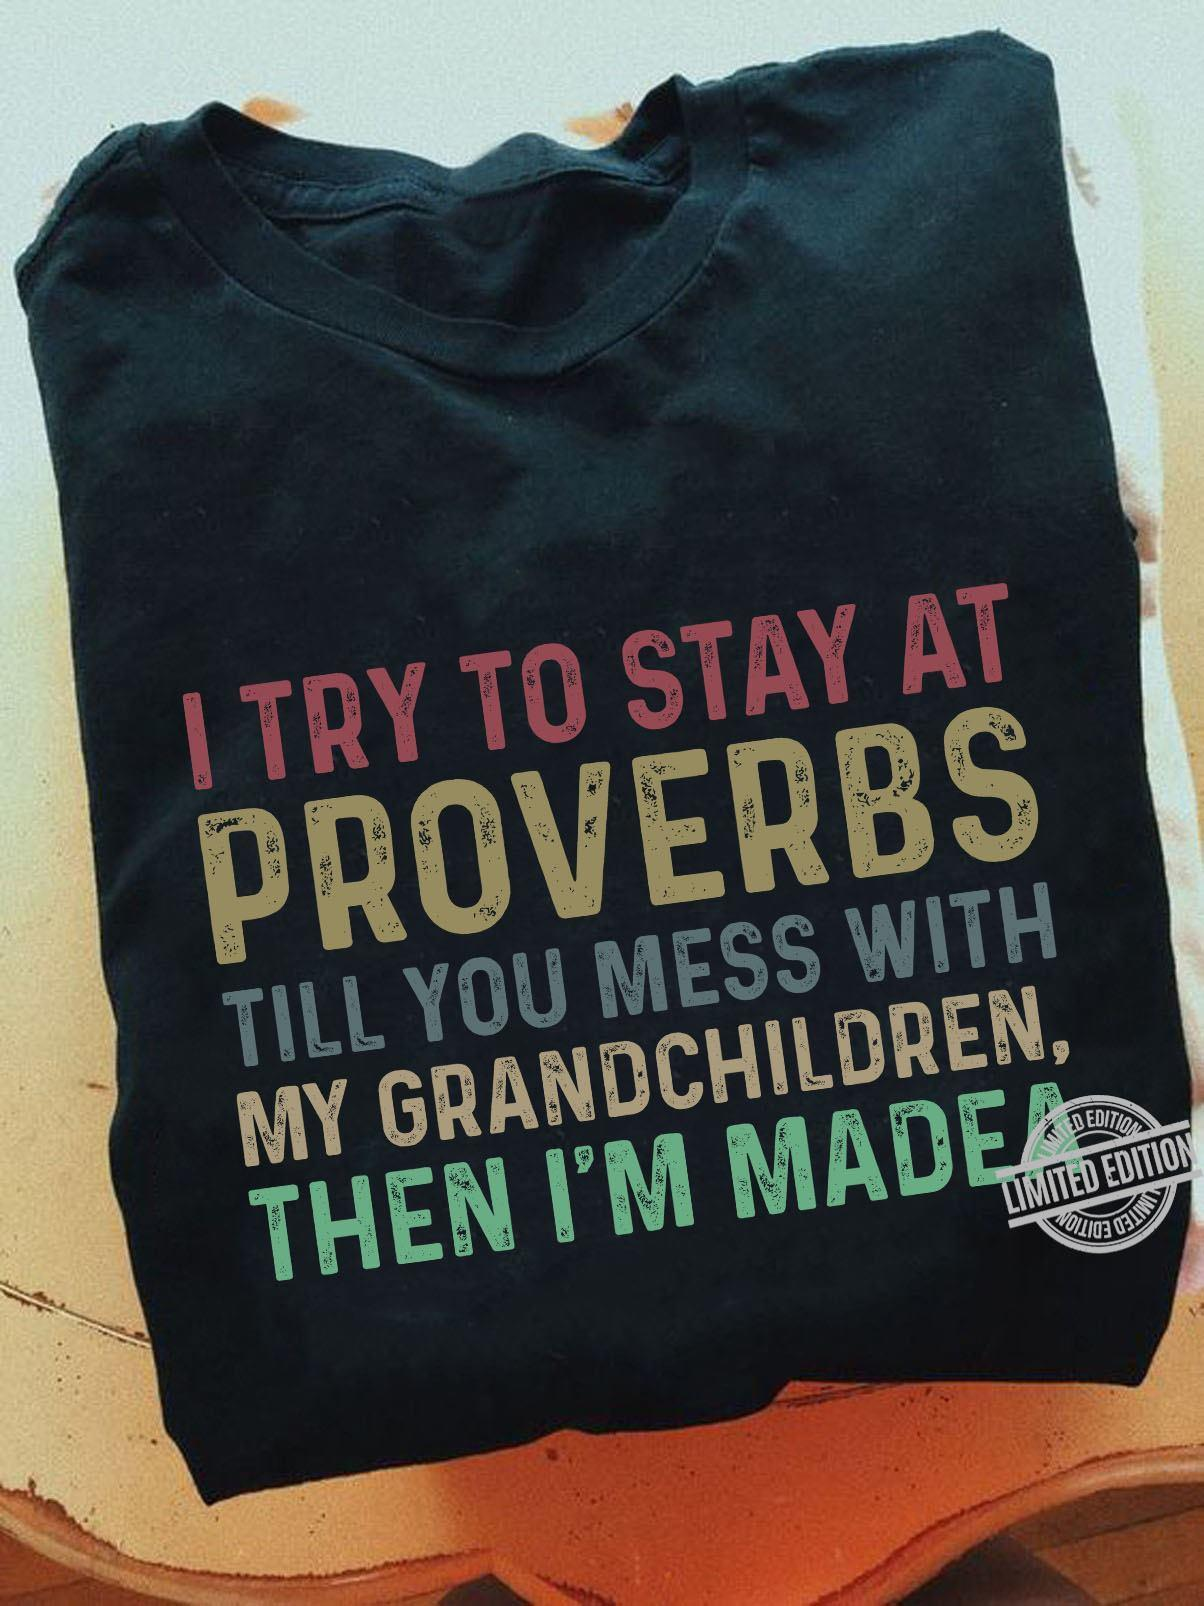 I Try To Stay At Proverbs Till You Mess With My Grandchildren Then I'm Medea Shirt